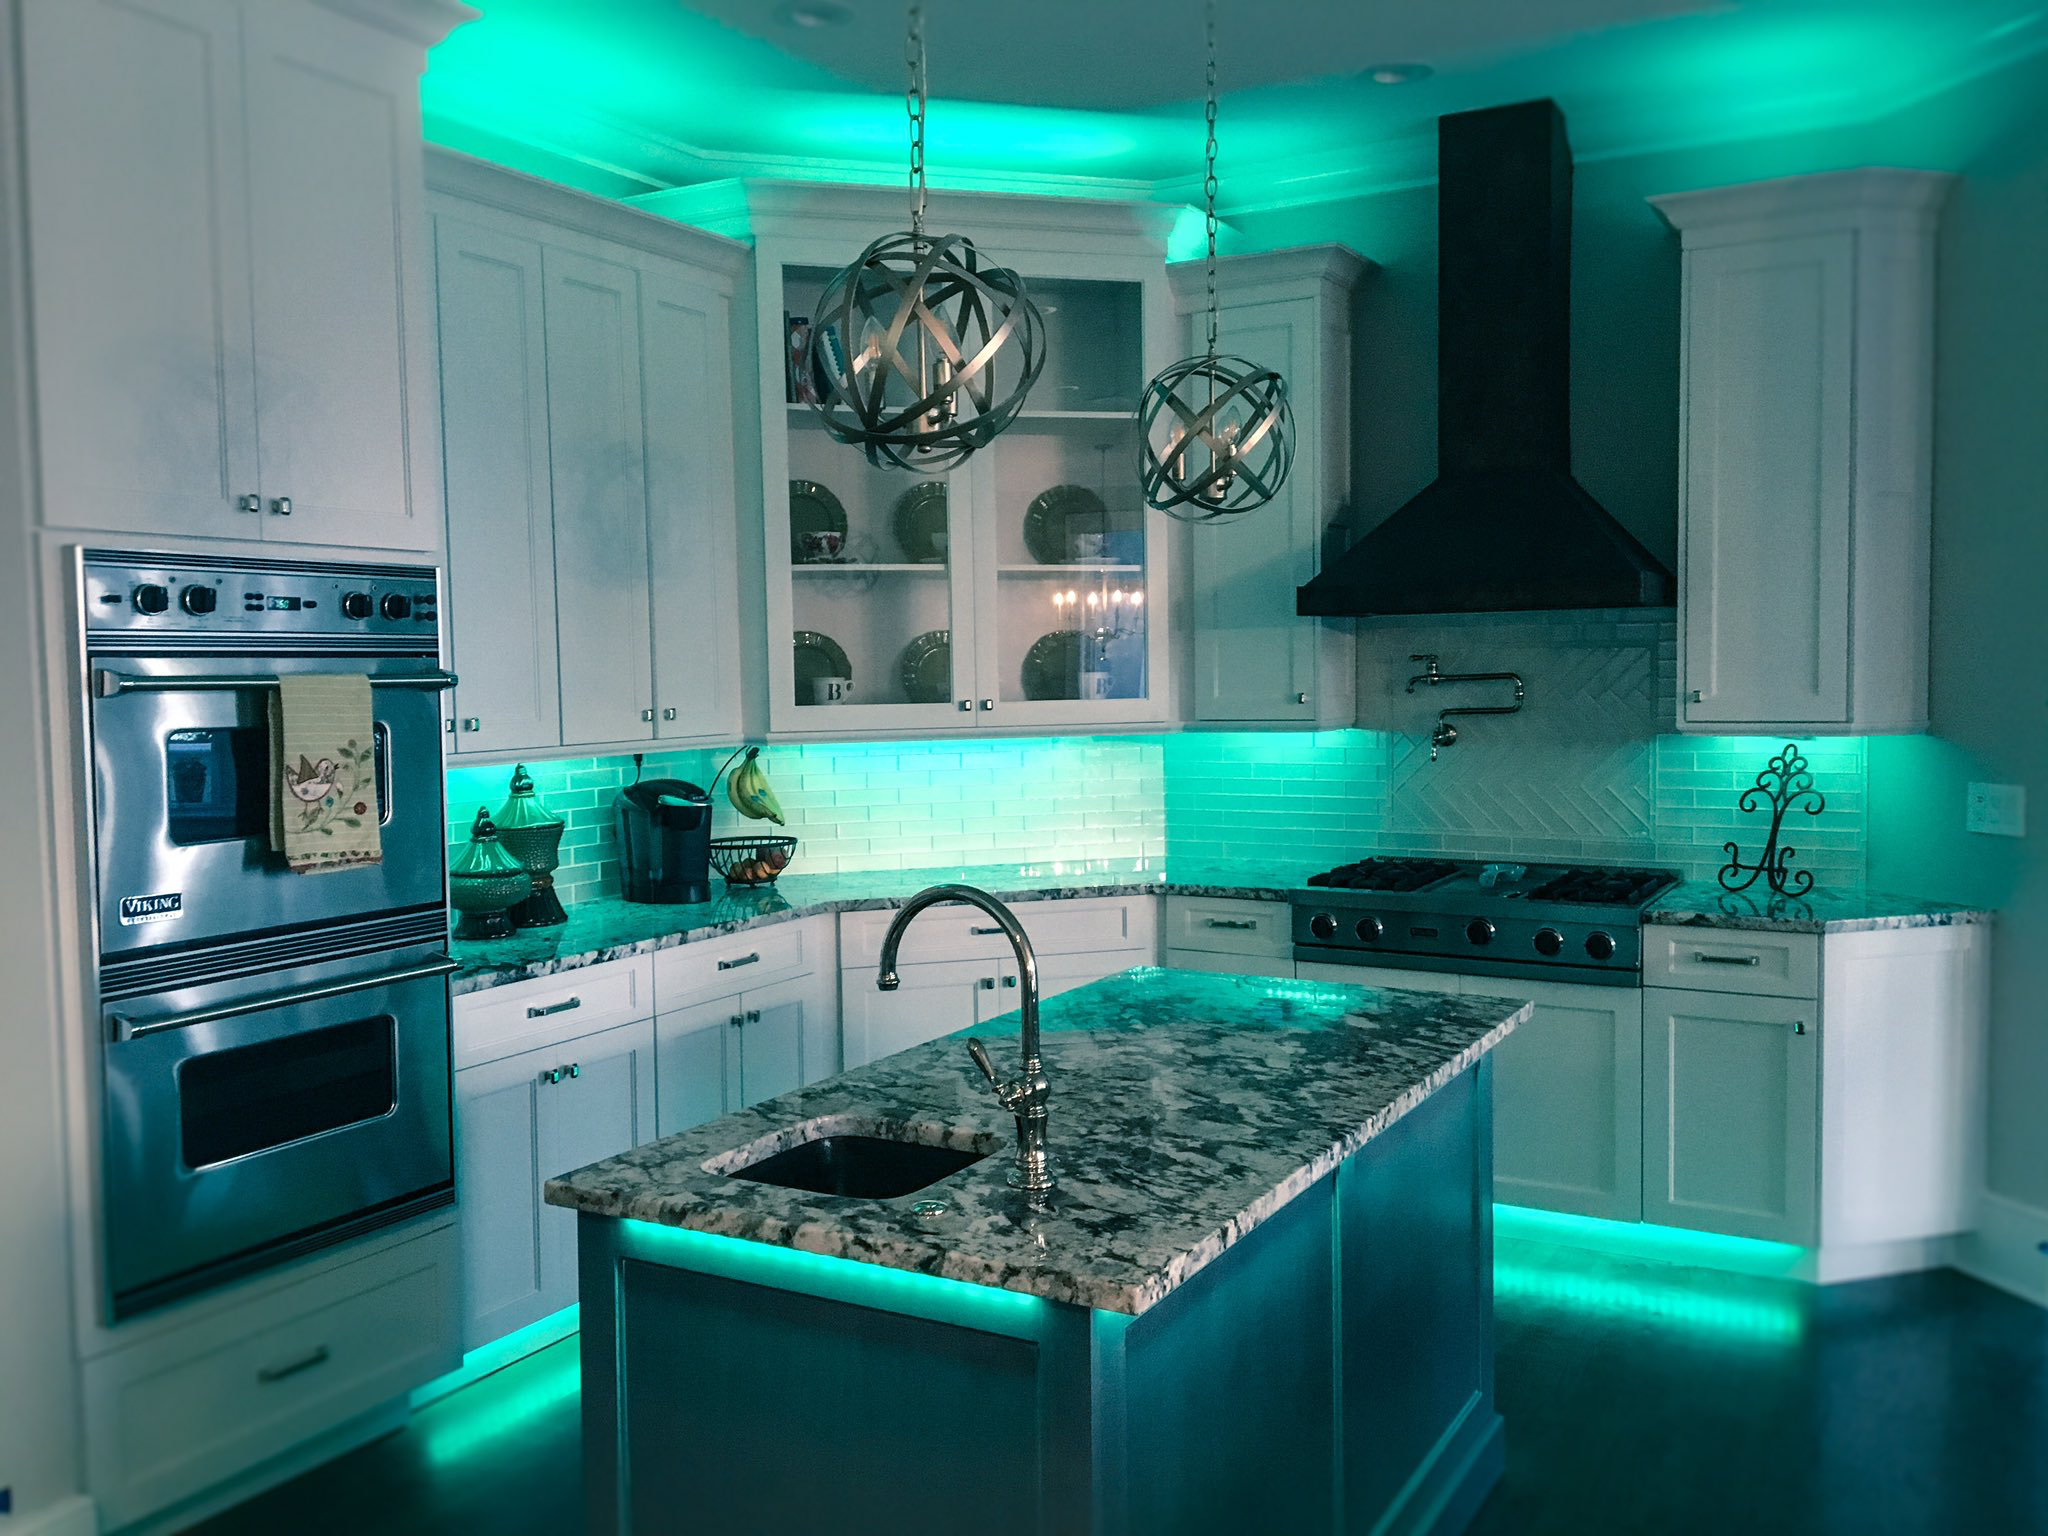 full color led accent lighting great for kitchens and man caves by railtech led - Led Cabinet Lighting